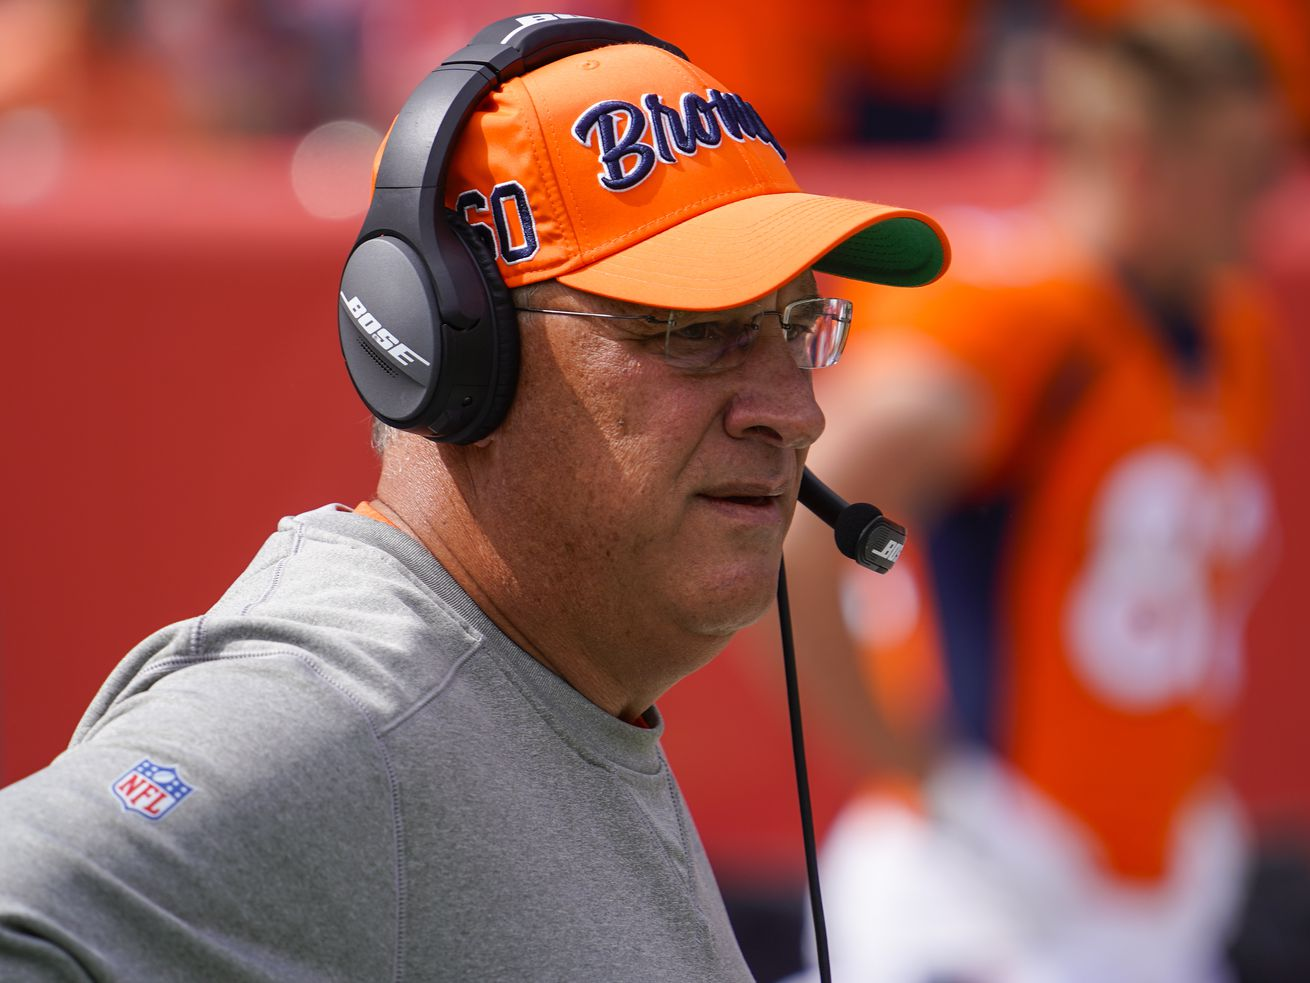 Broncos coach Vic Fangio apologizes for comments about racism in the NFL